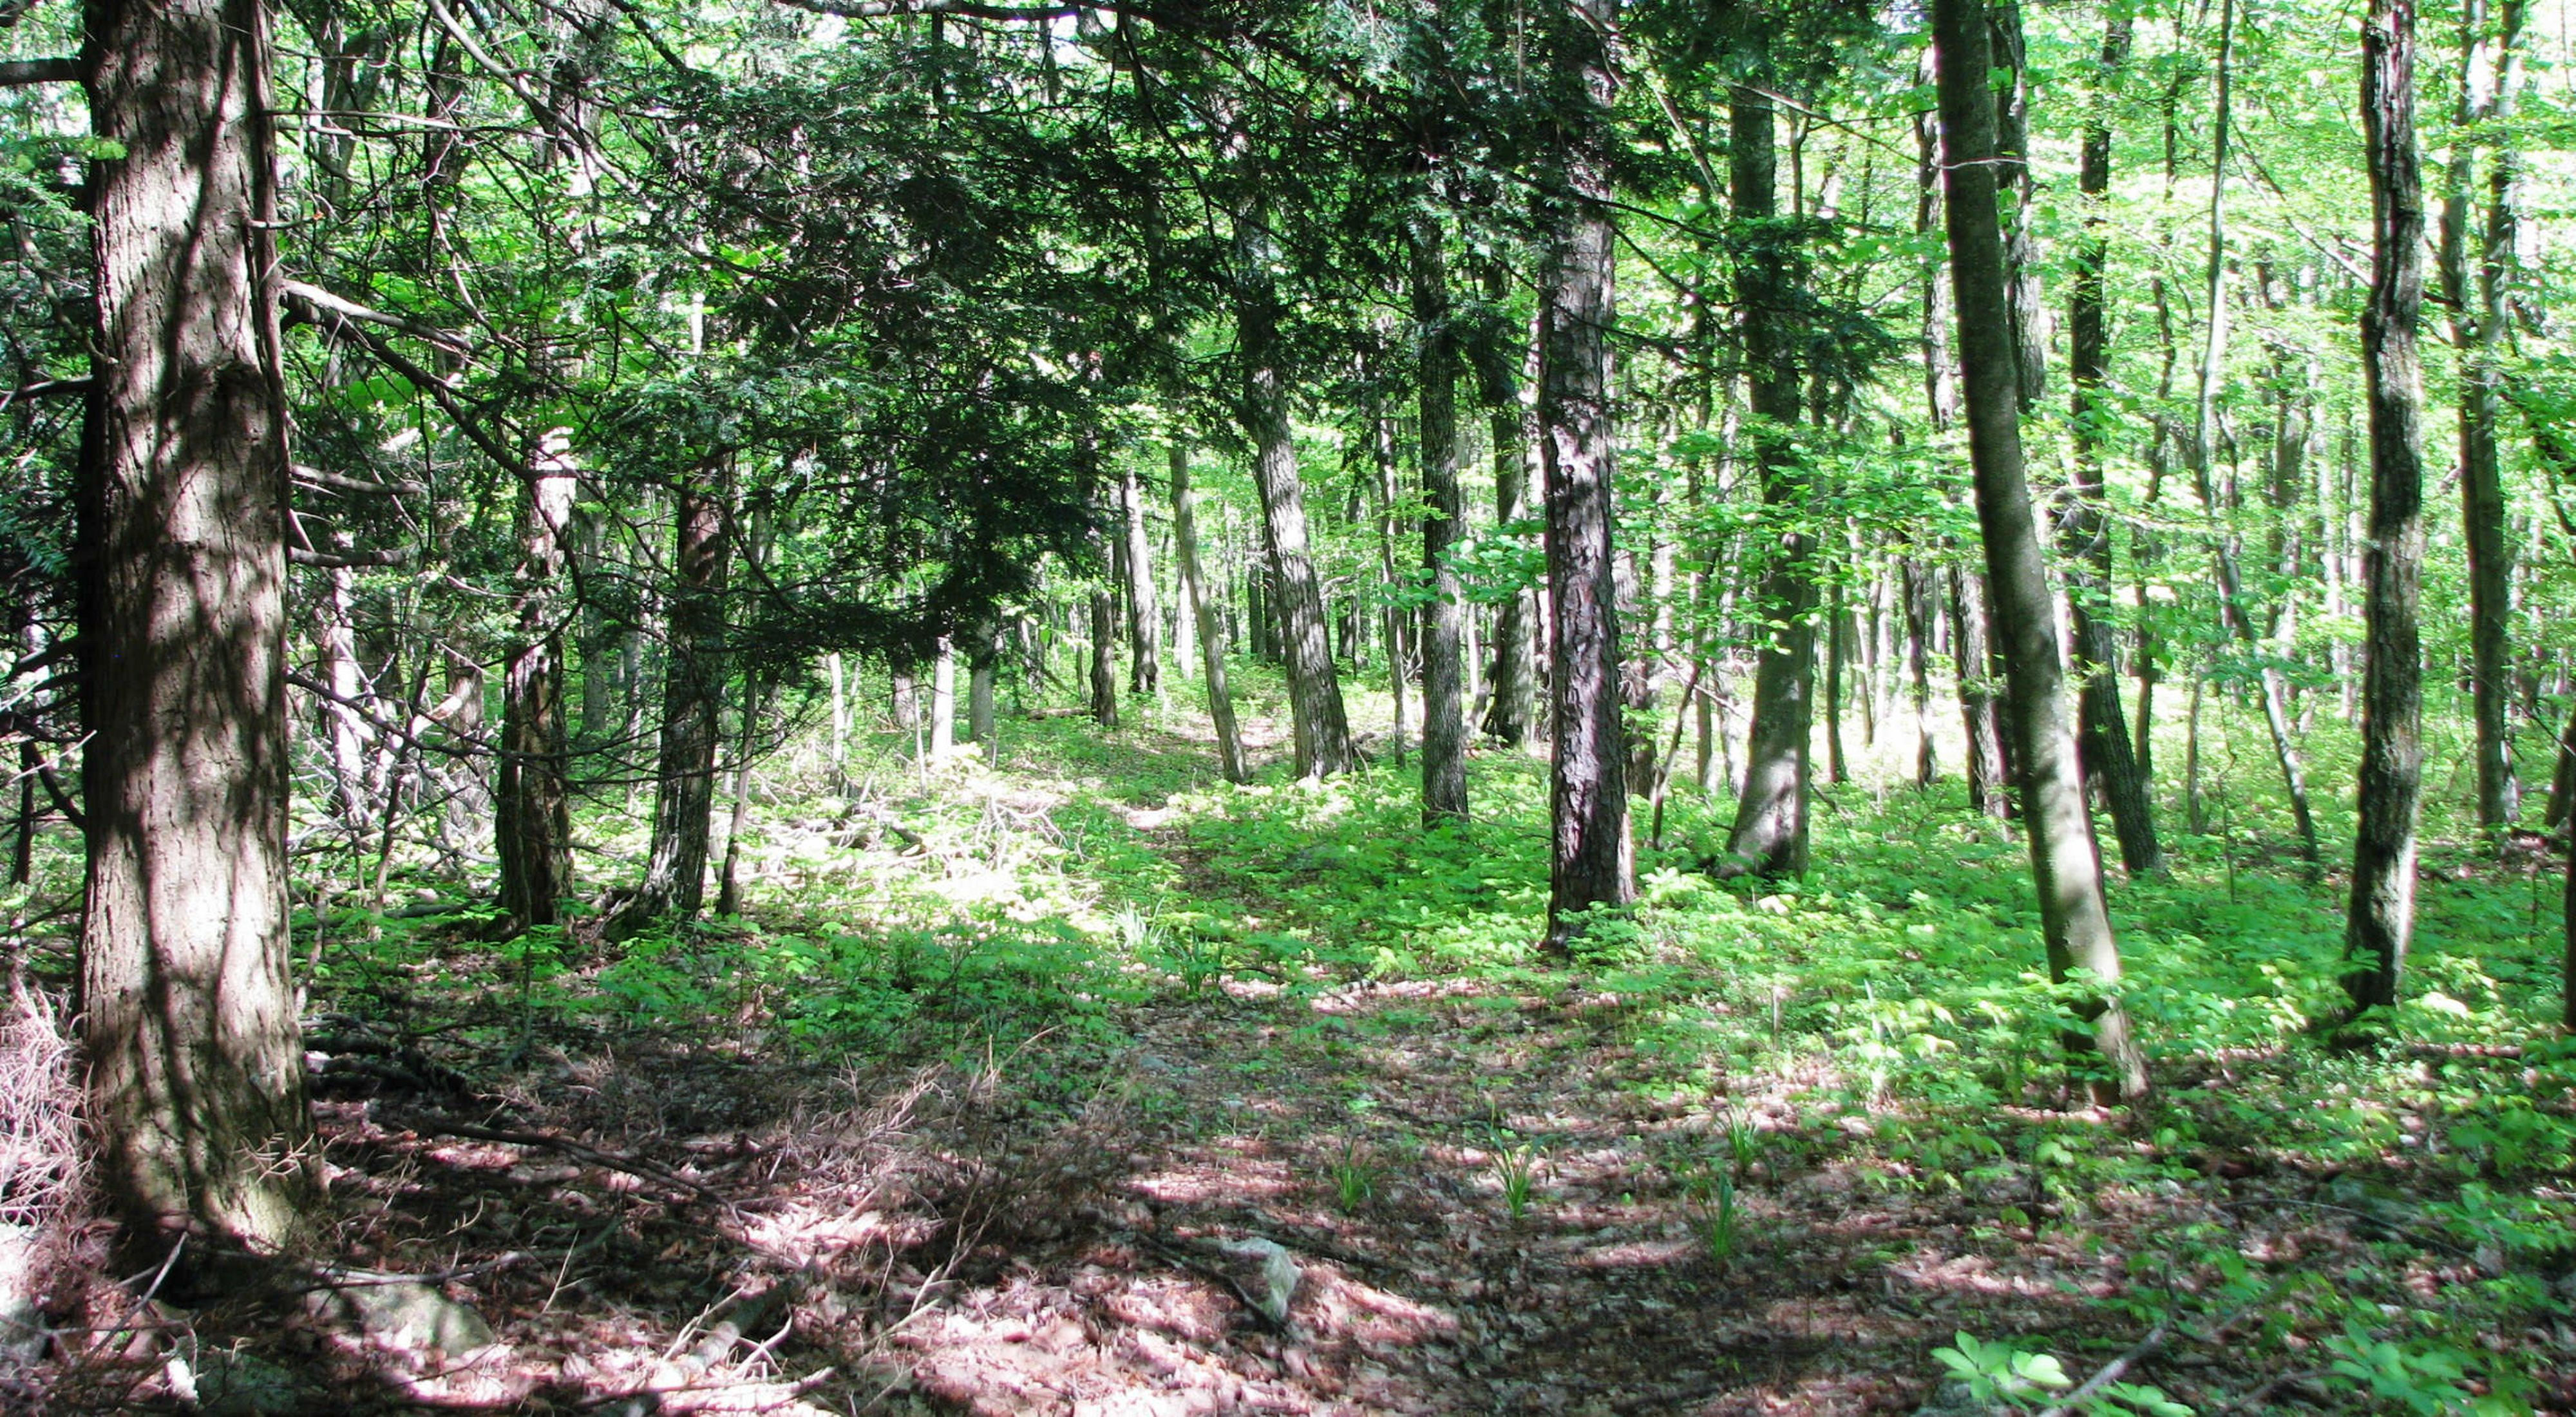 The Nature Conservancy permanently protected 127 acres along Pennsylvania's Kittatinny Ridge in June 2020.